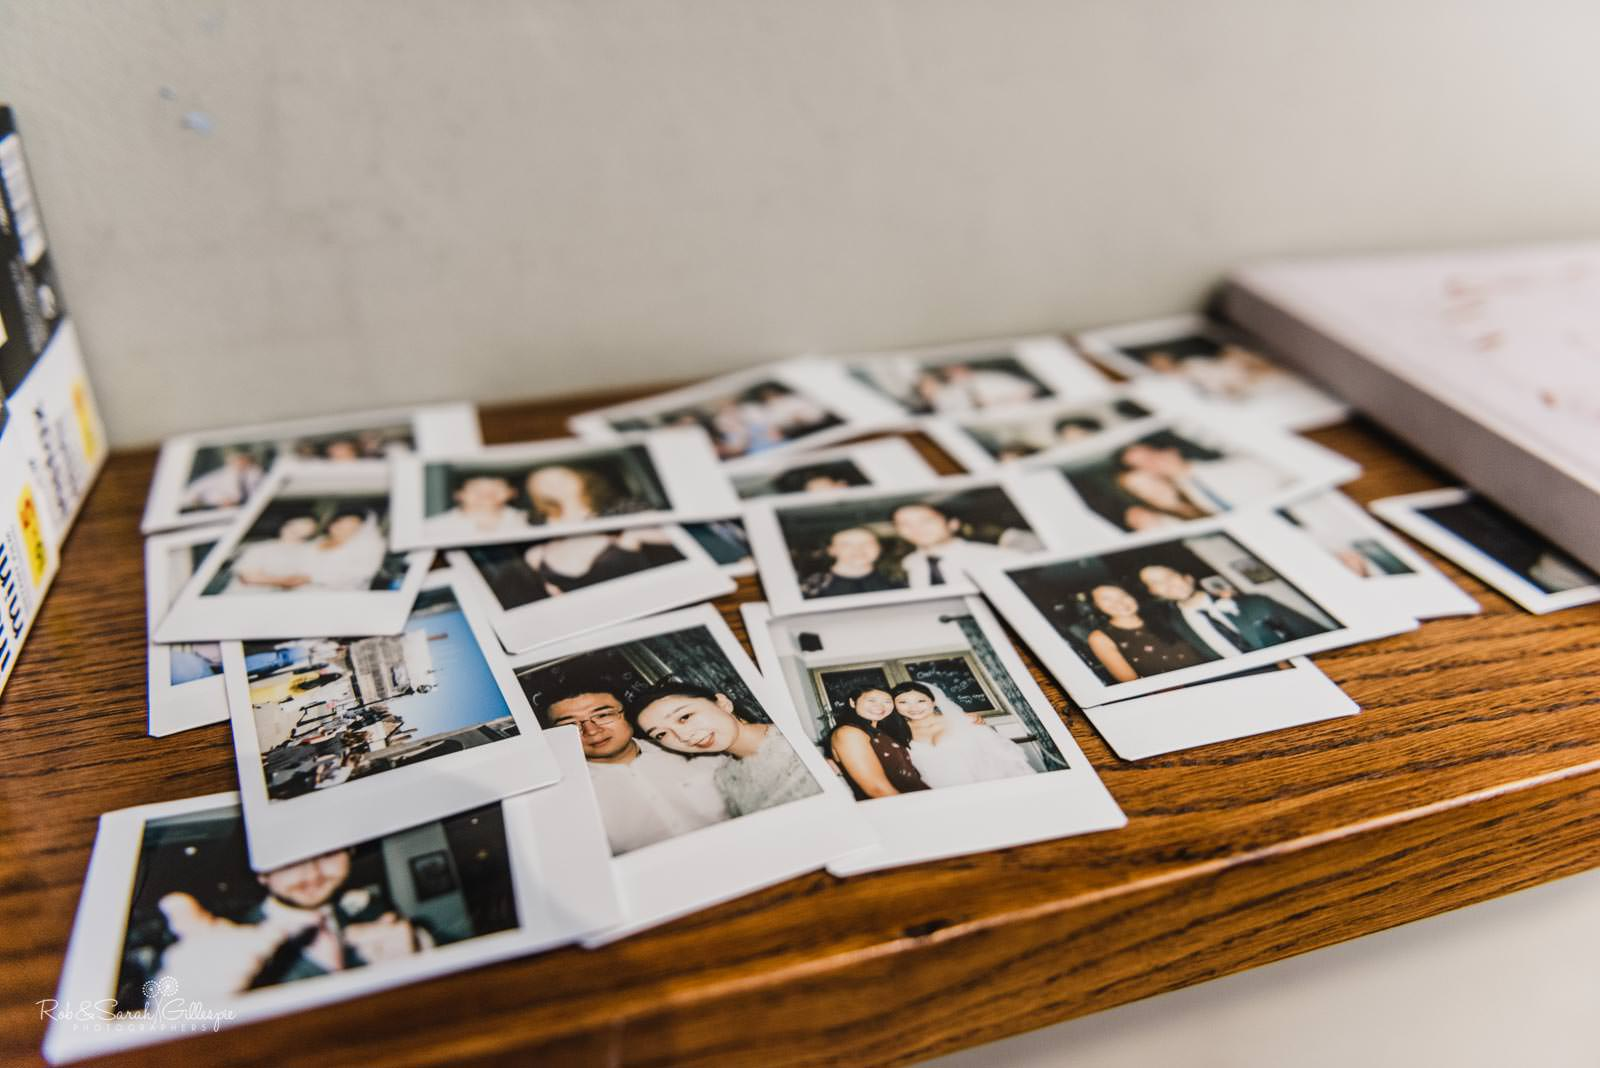 Polaroid pictures of wedding guests at Stratford upon Avon